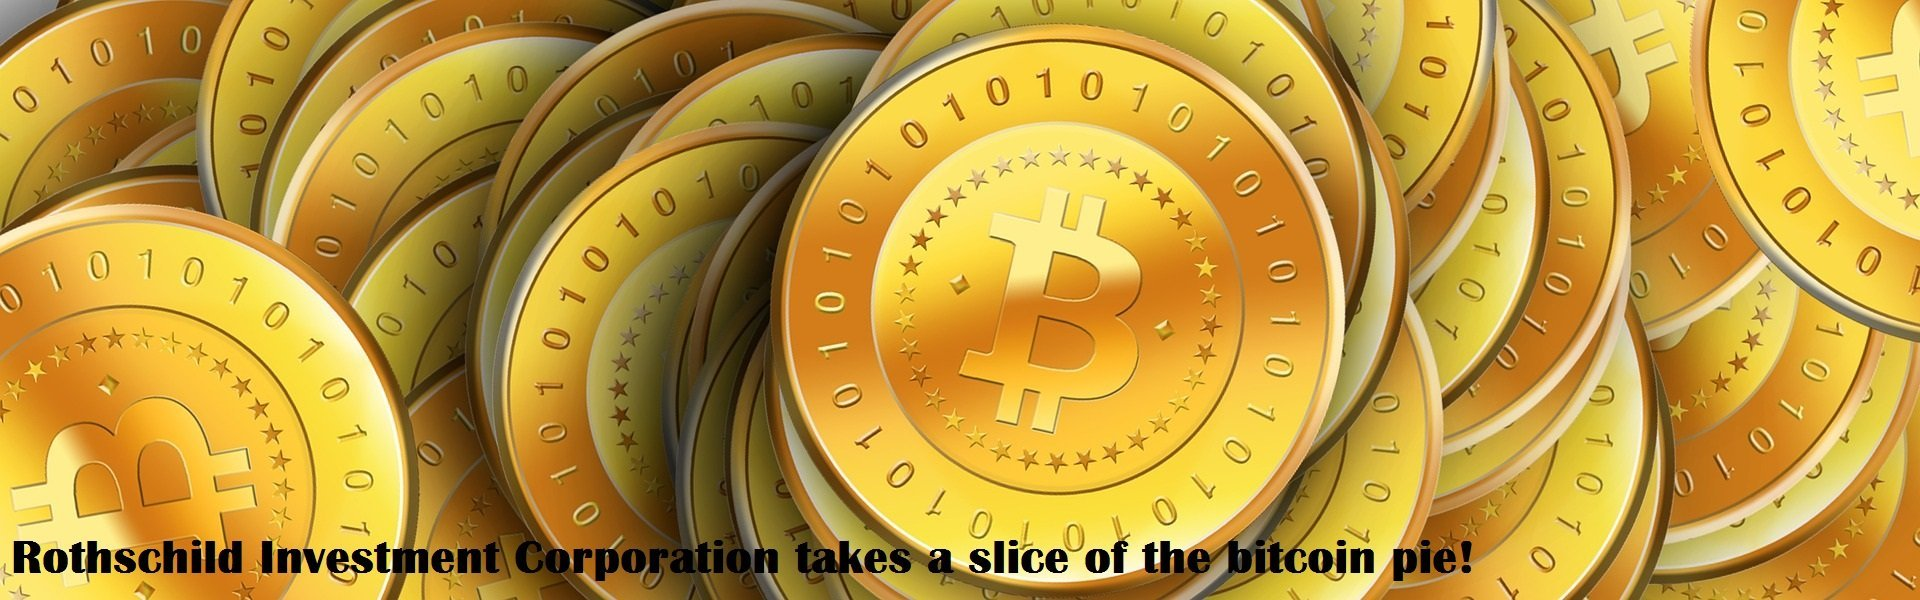 Rothschild Investment Corporation takes a slice of the bitcoin pie